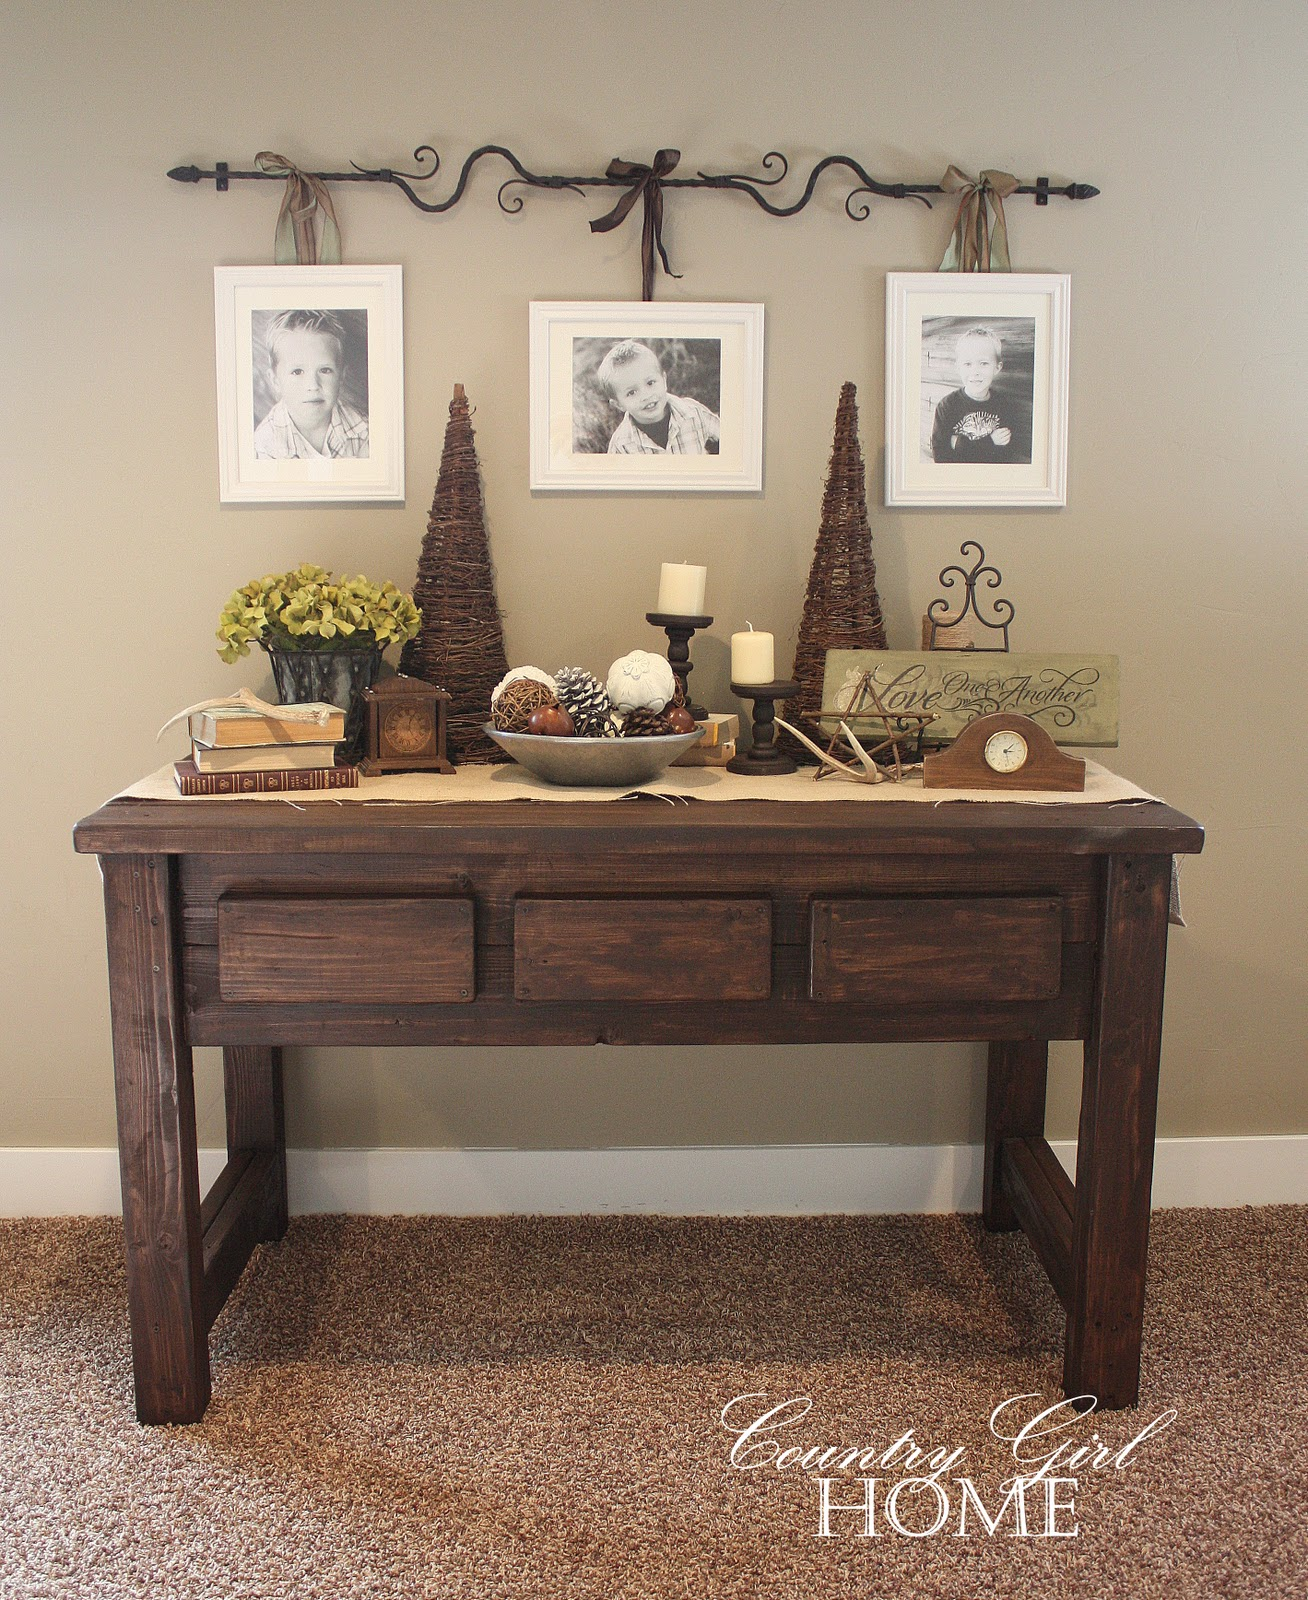 COUNTRY GIRL HOME : Hanging Pictures